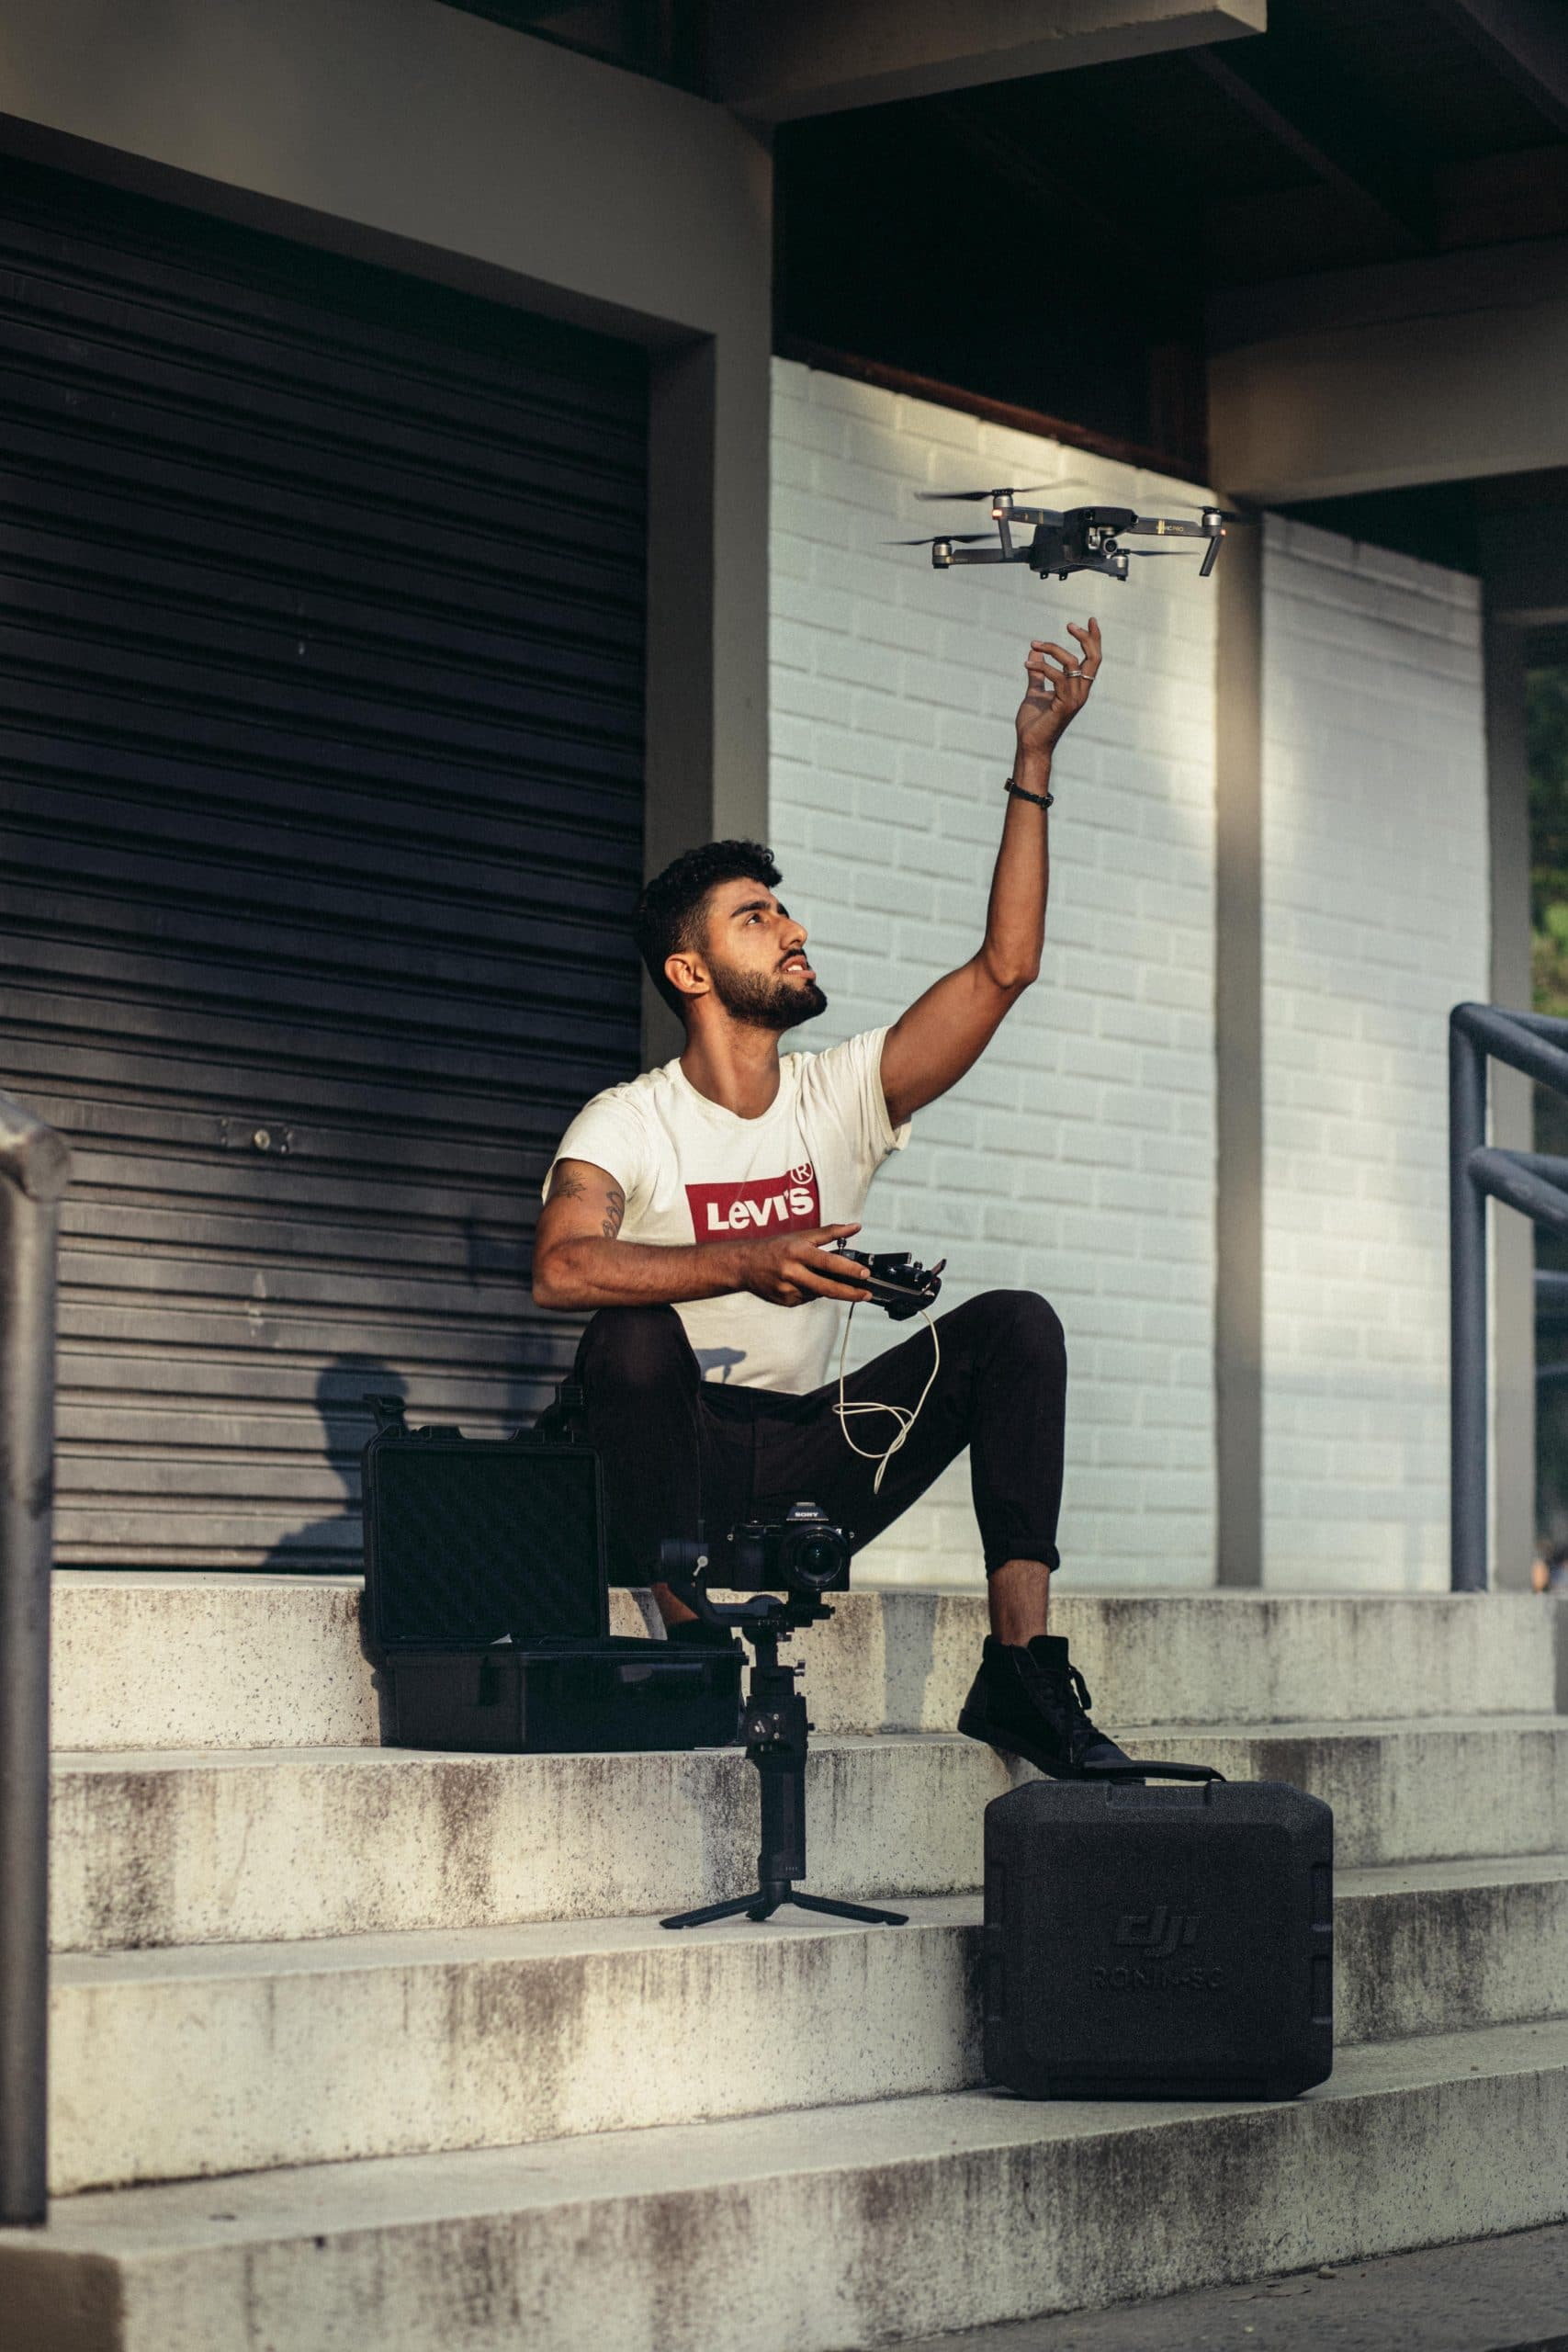 man-in-white-shirt-holding-remote-of-a-drone-3230313